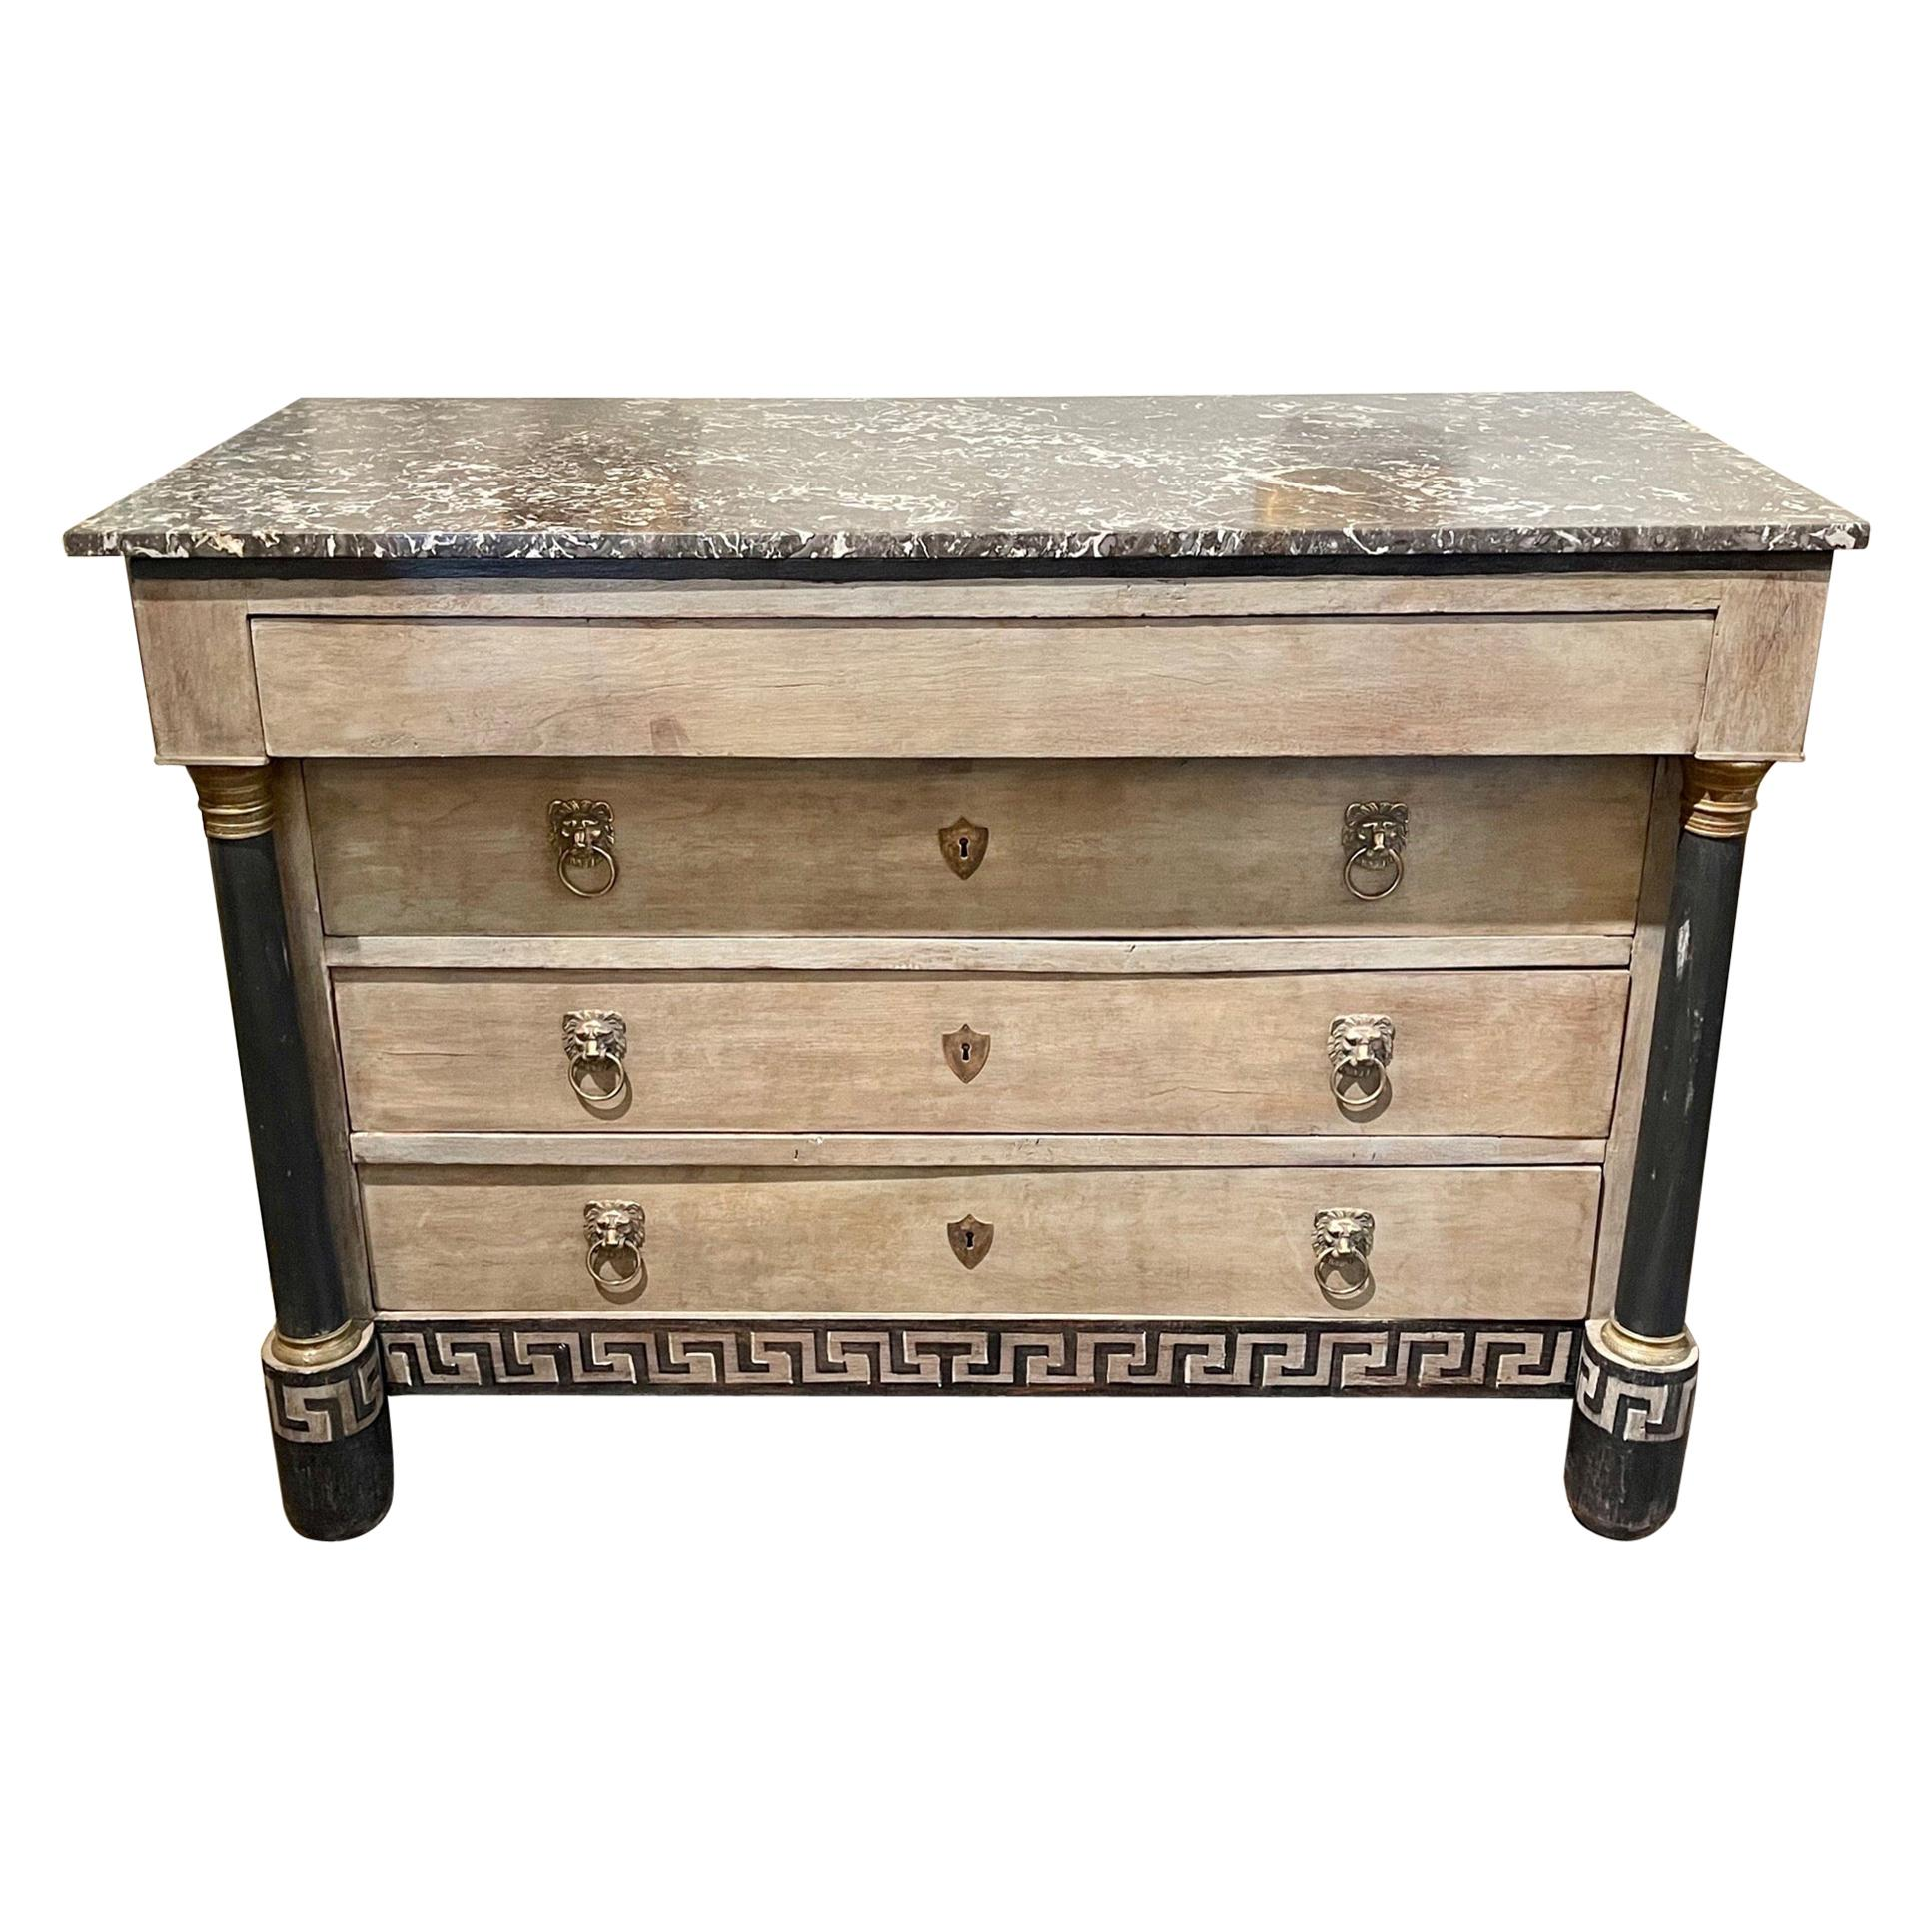 19th Century French Empire Painted Commode with Greek Key Pattern